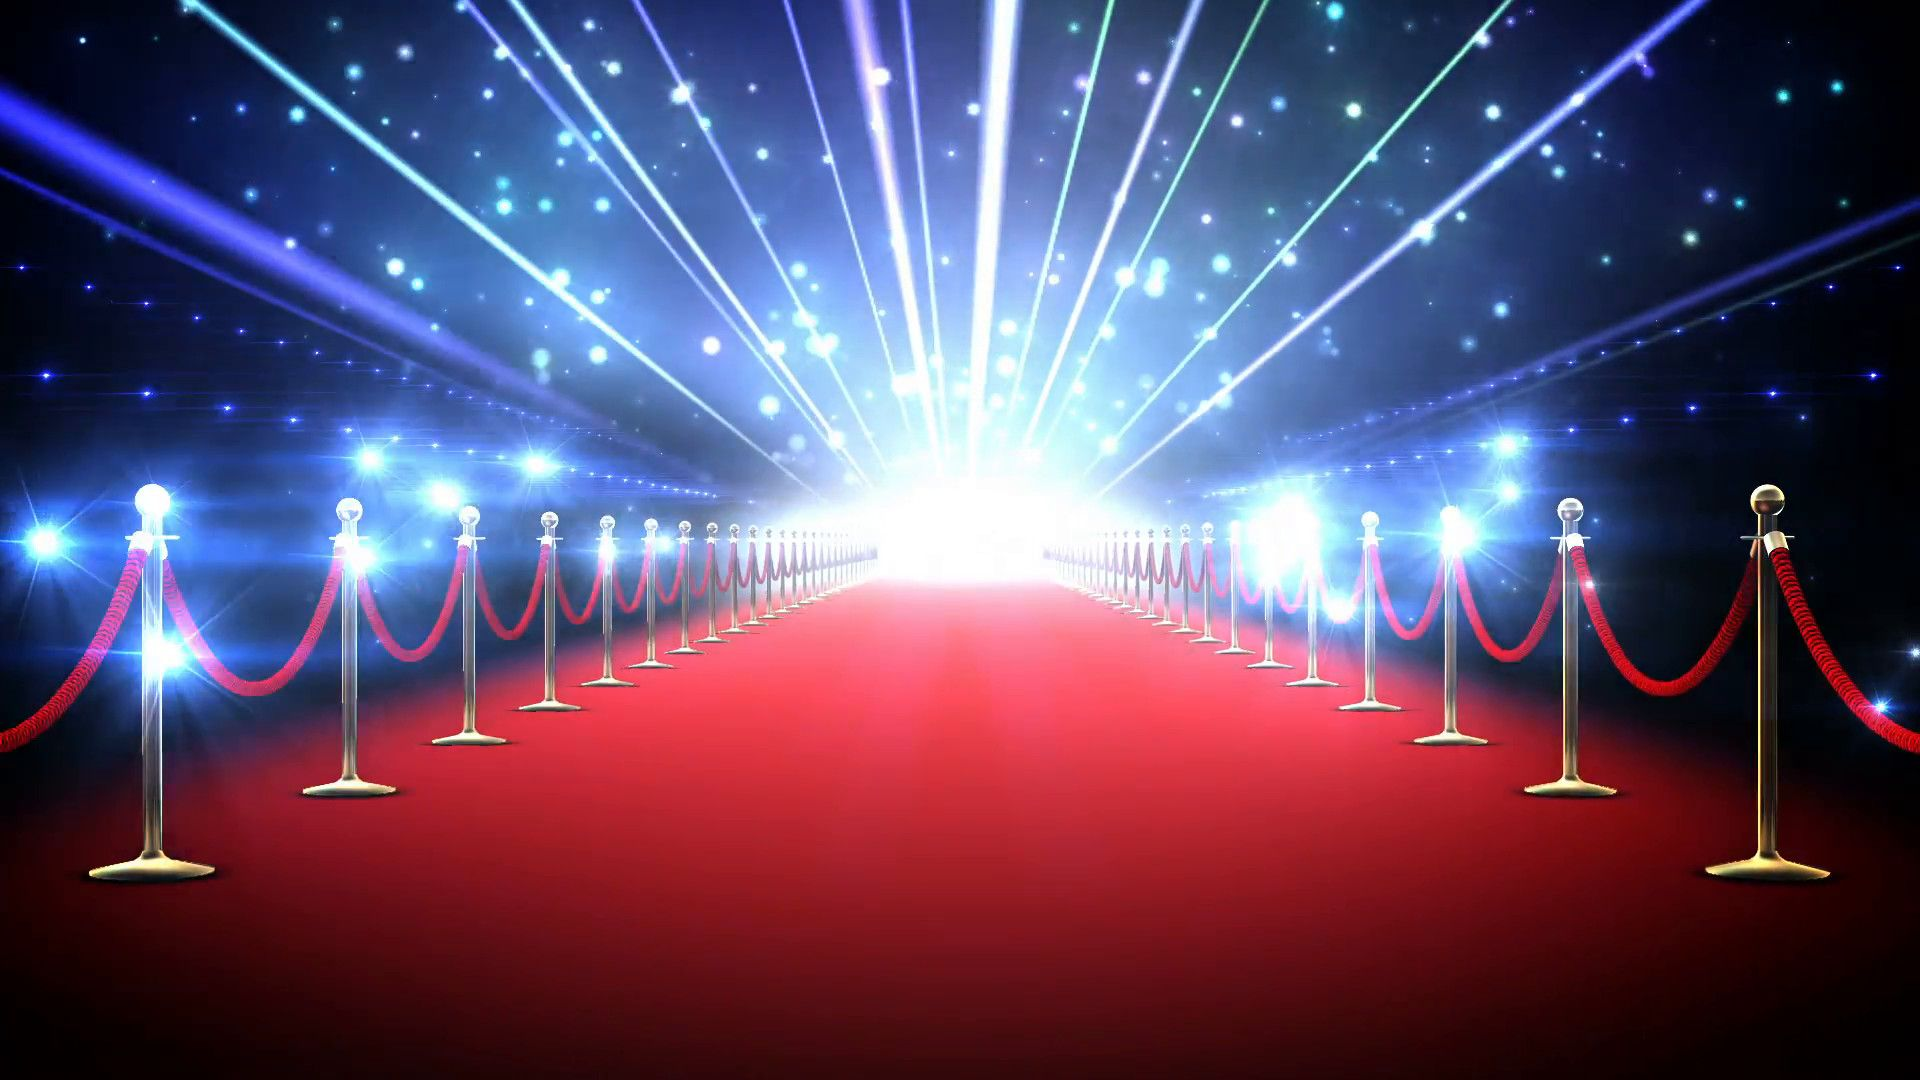 Red Carpet Wallpapers Top Free Red Carpet Backgrounds Wallpaperaccess